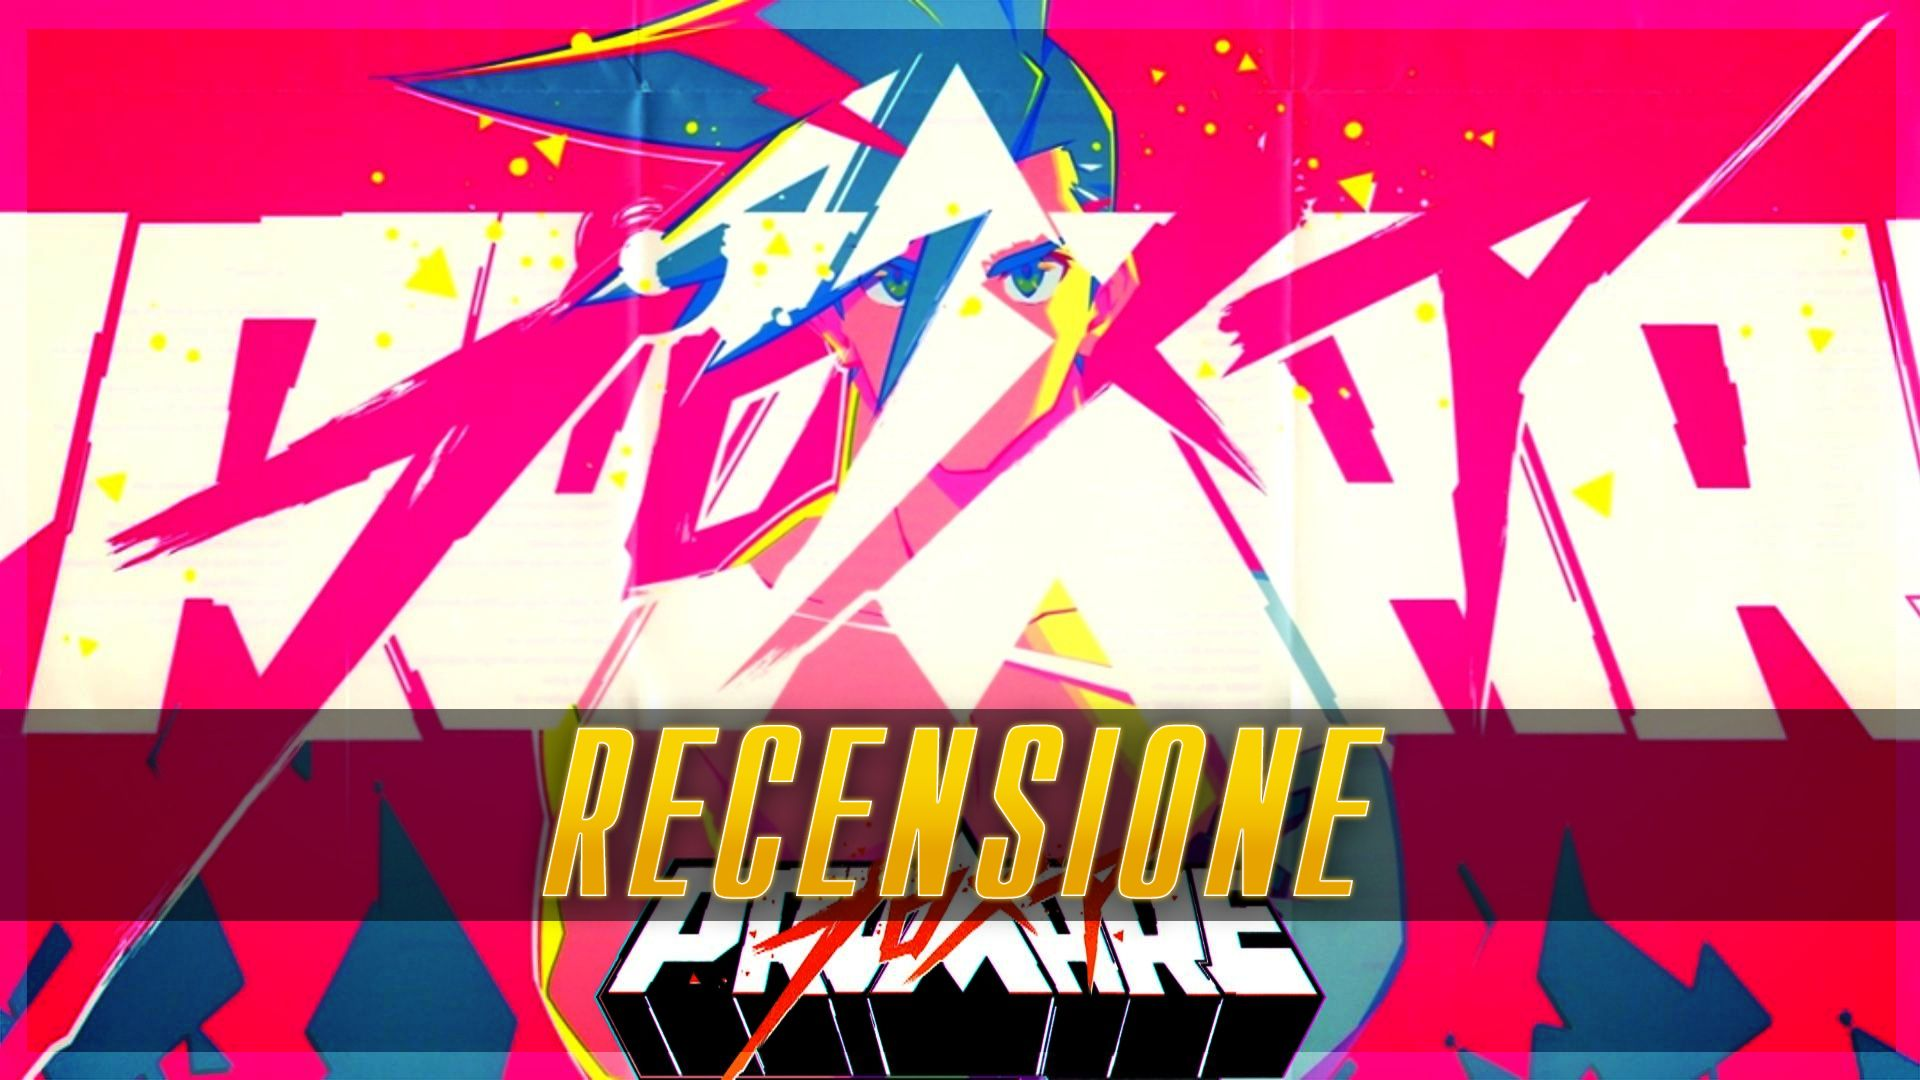 30+ Promare Wallpaper Hd PNG